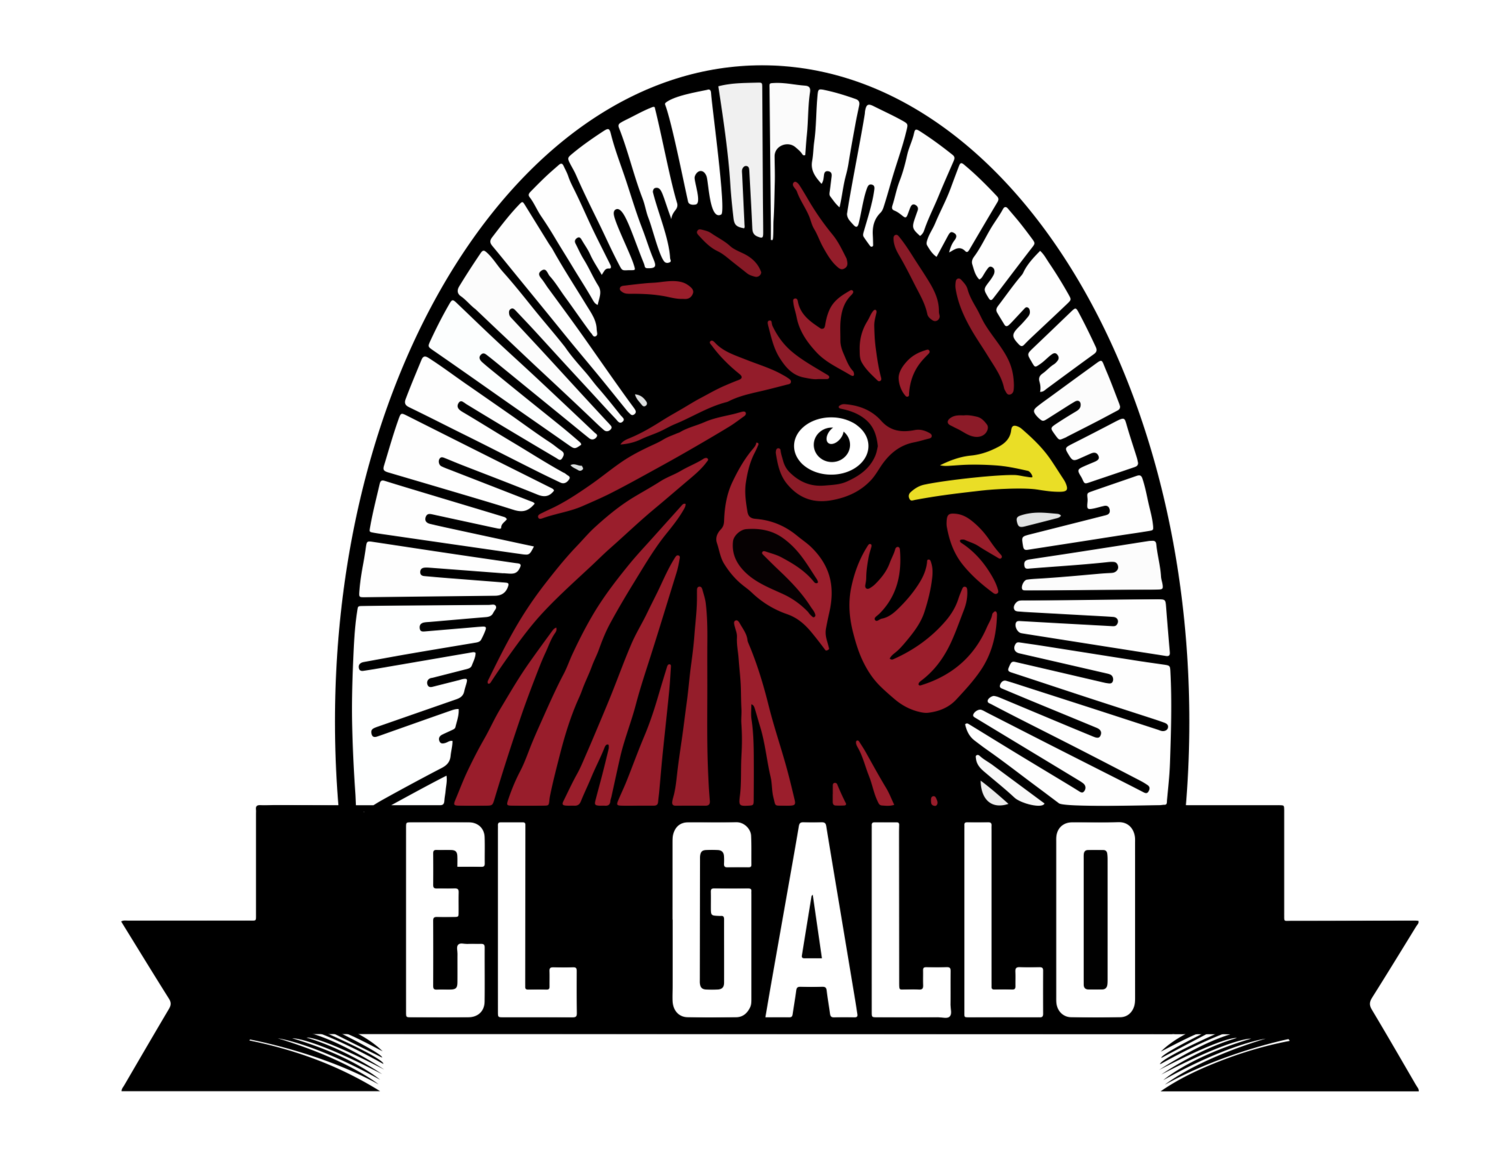 El Gallo Taqueria